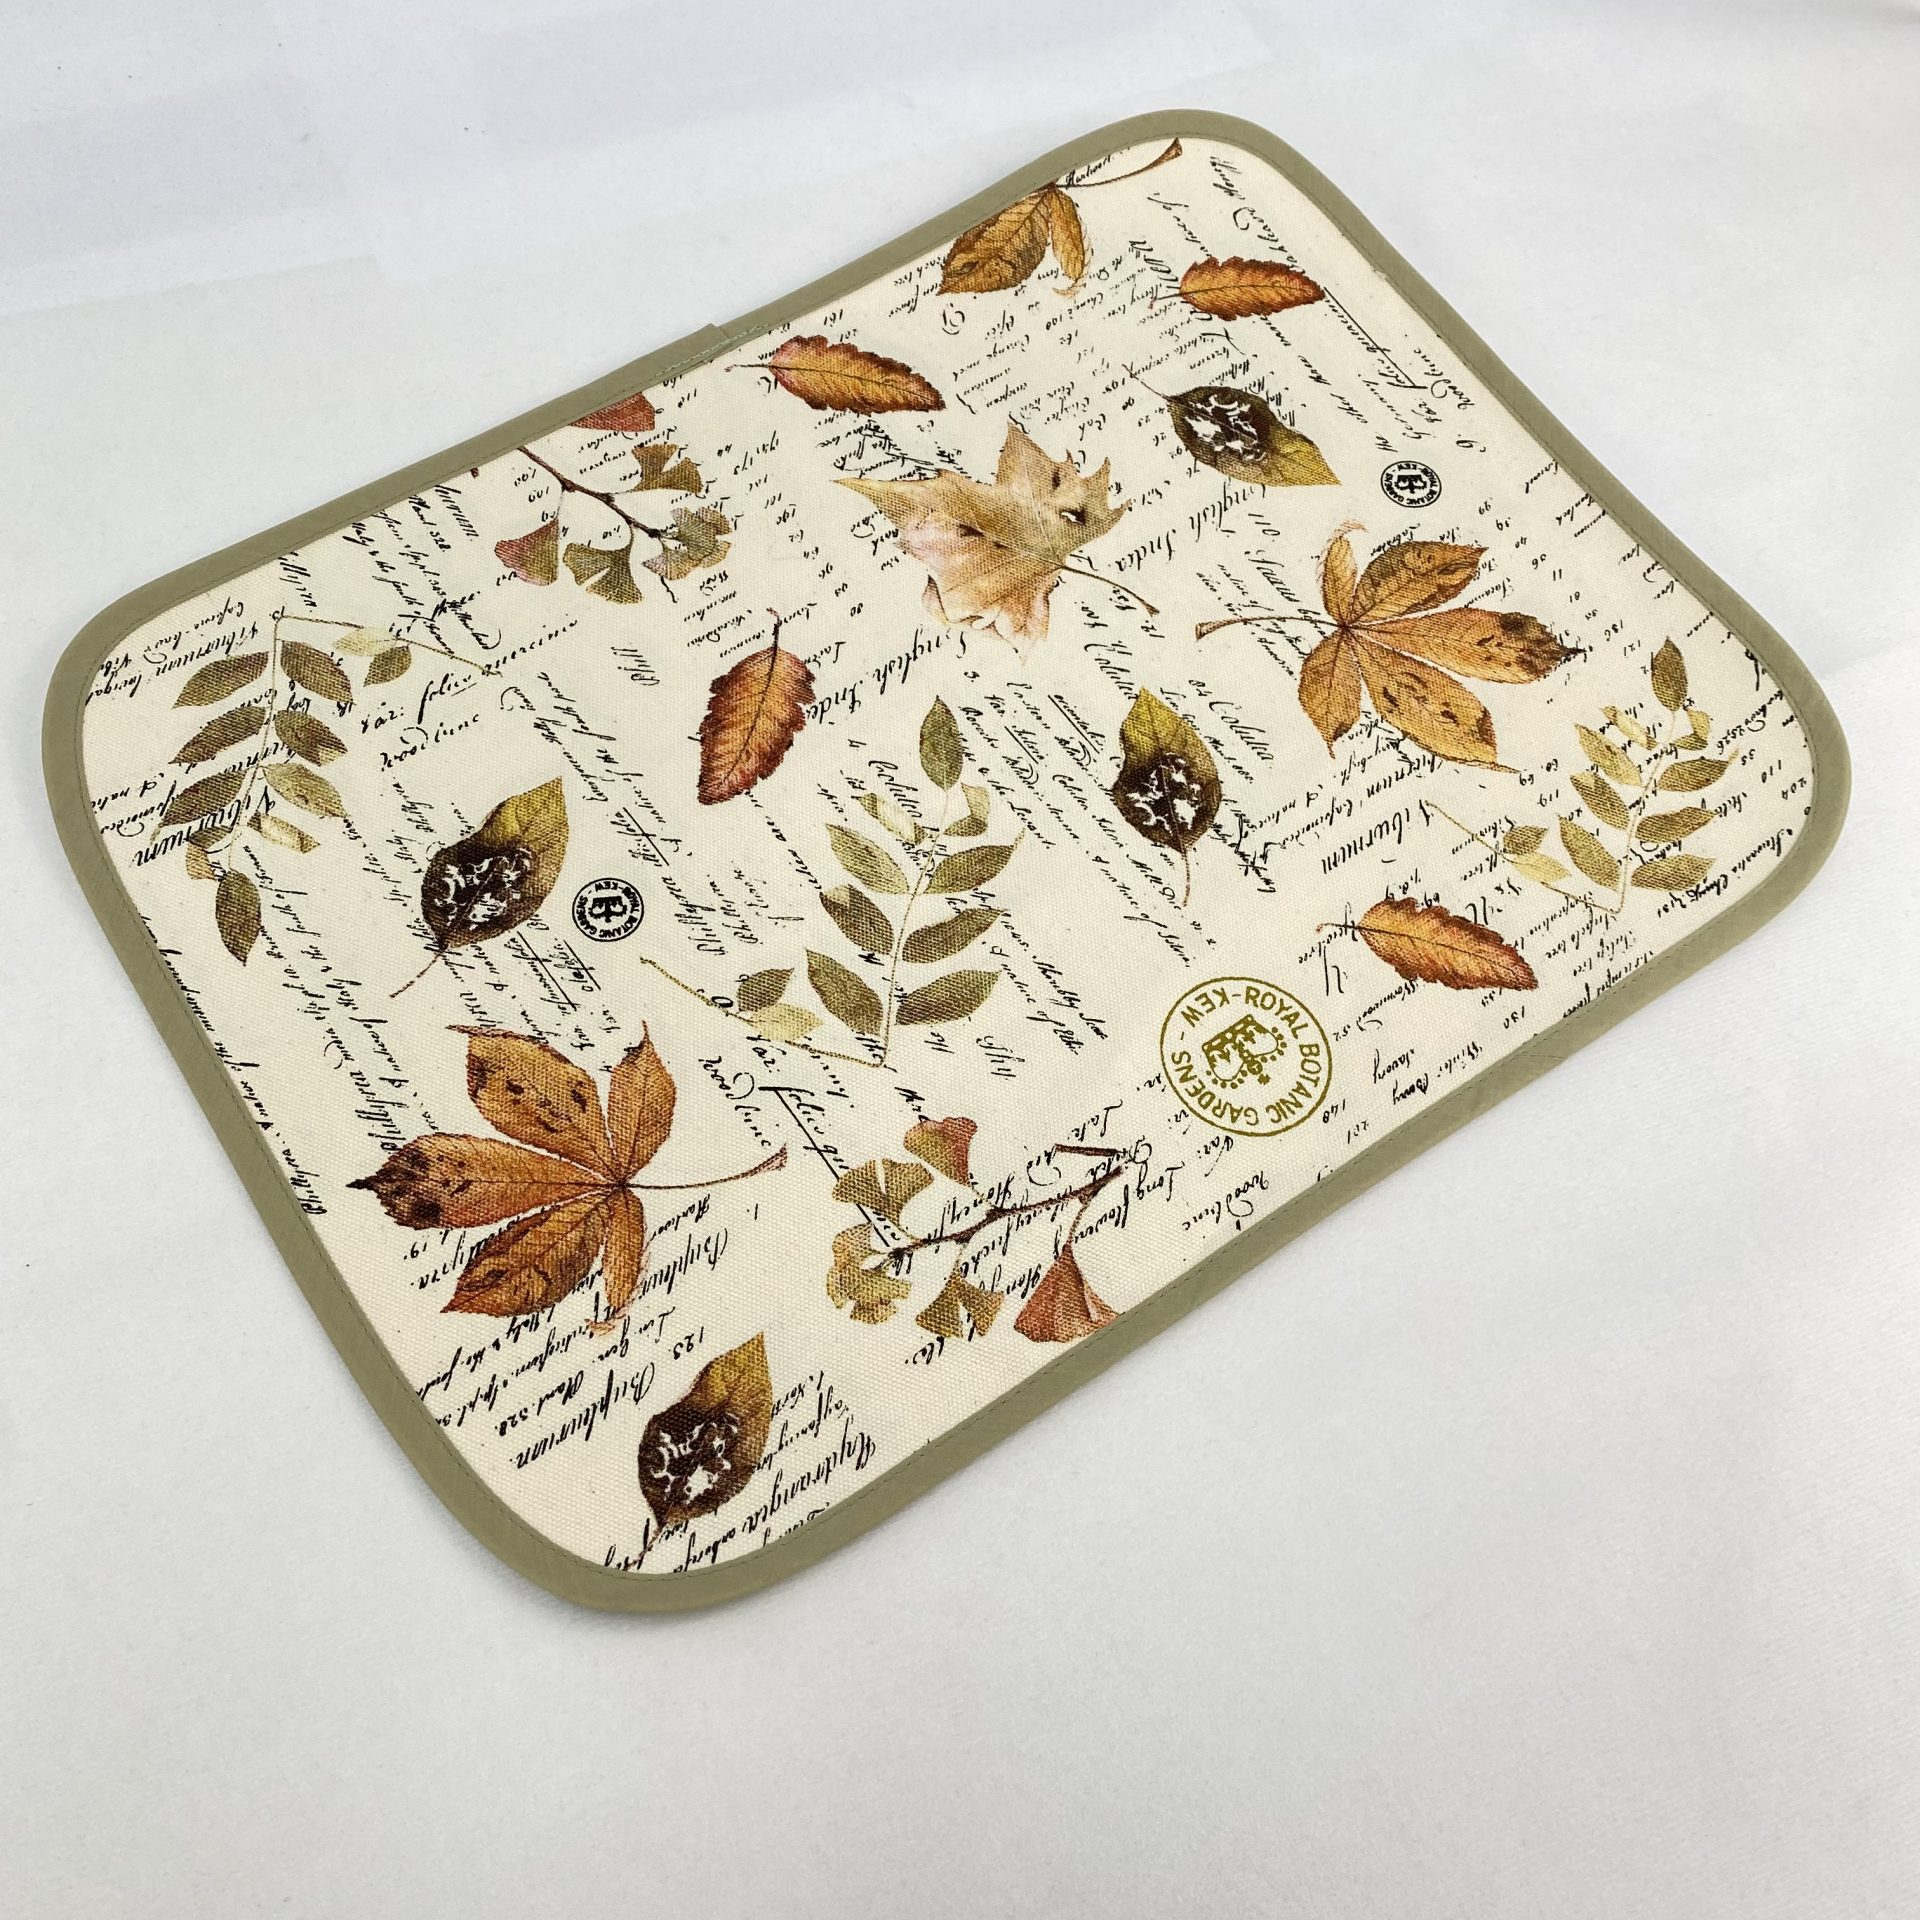 Screen printed placemat by Paul Bristow UK made quaity printed textile products